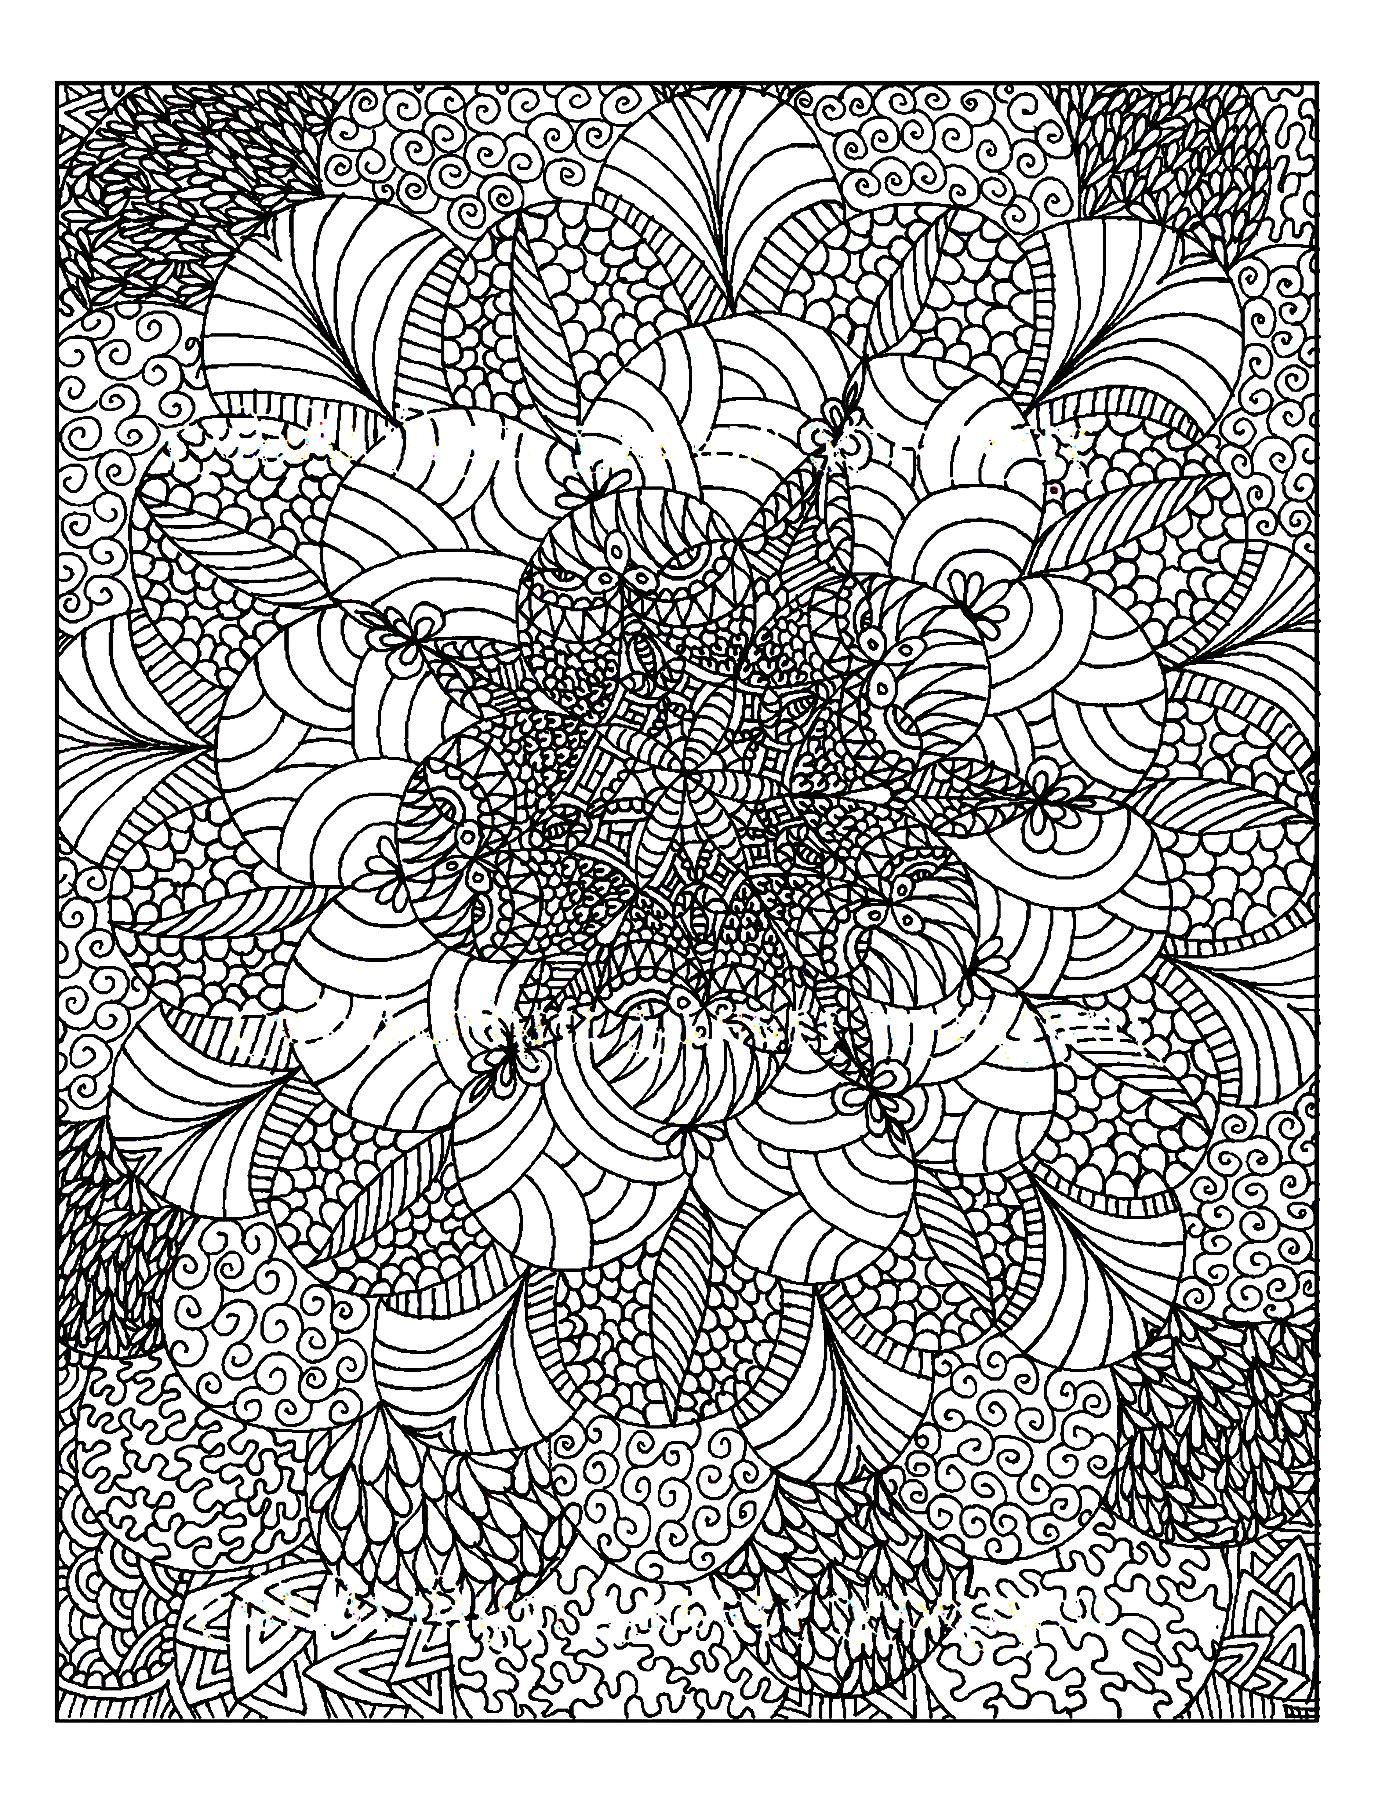 Free printable zen coloring pages - Free Coloring Page Coloring Anti Stress To Print